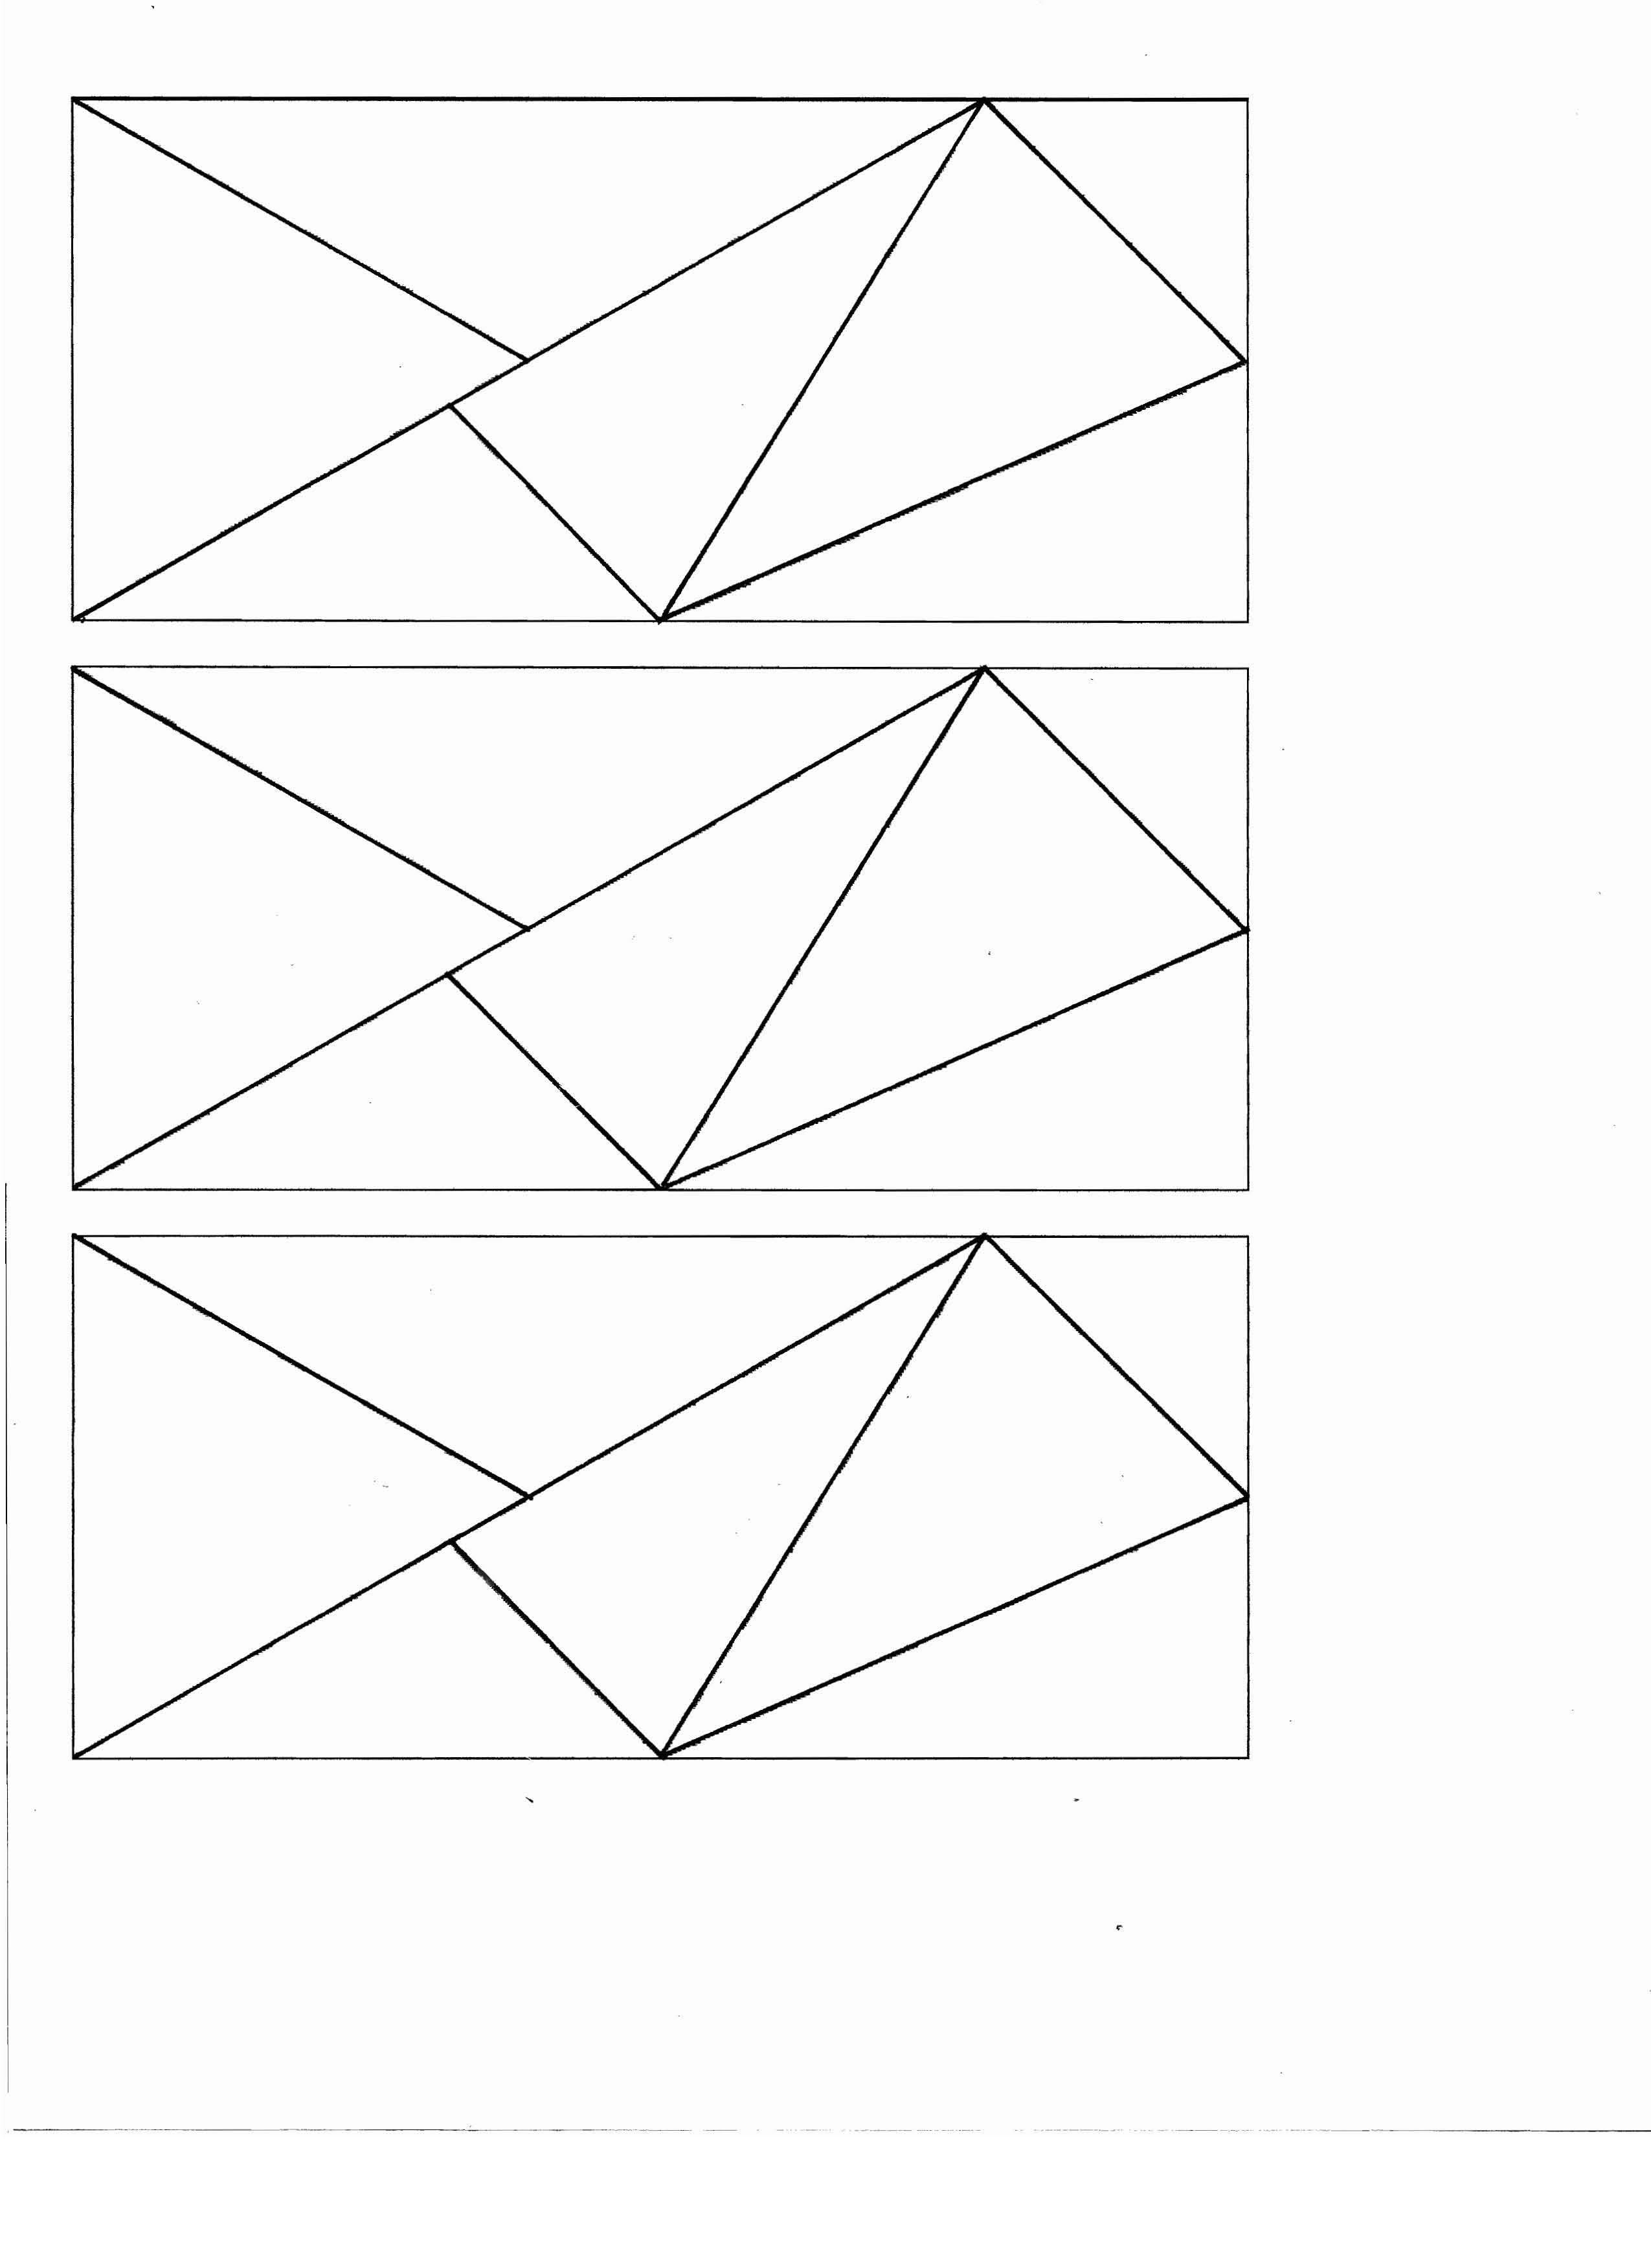 Worksheets Special Segments In Triangles Worksheet 1 of 2 identifying triangles student worksheet grade 7 pre algebra cut out one